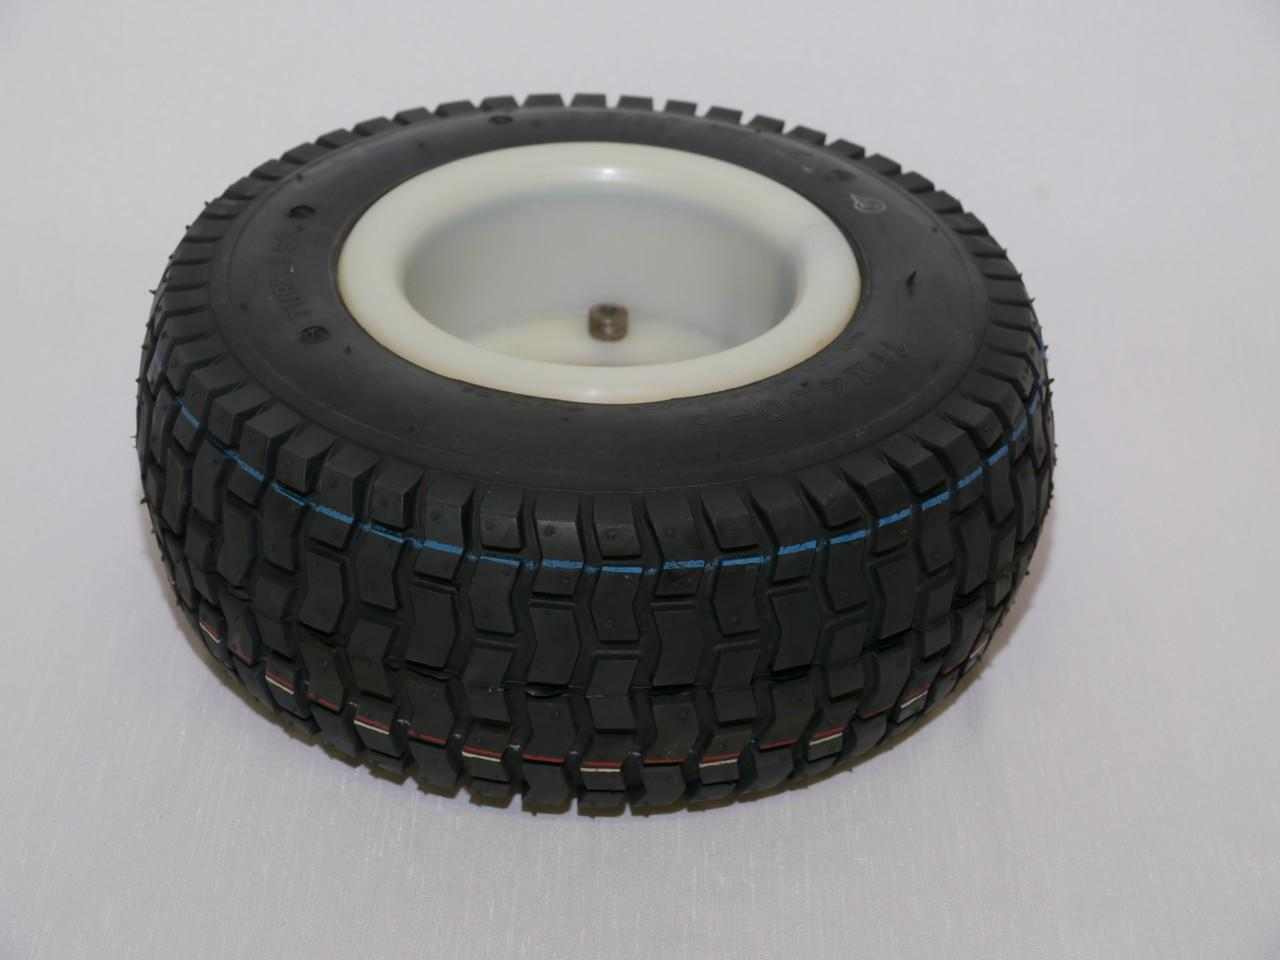 Grp 3 tyres